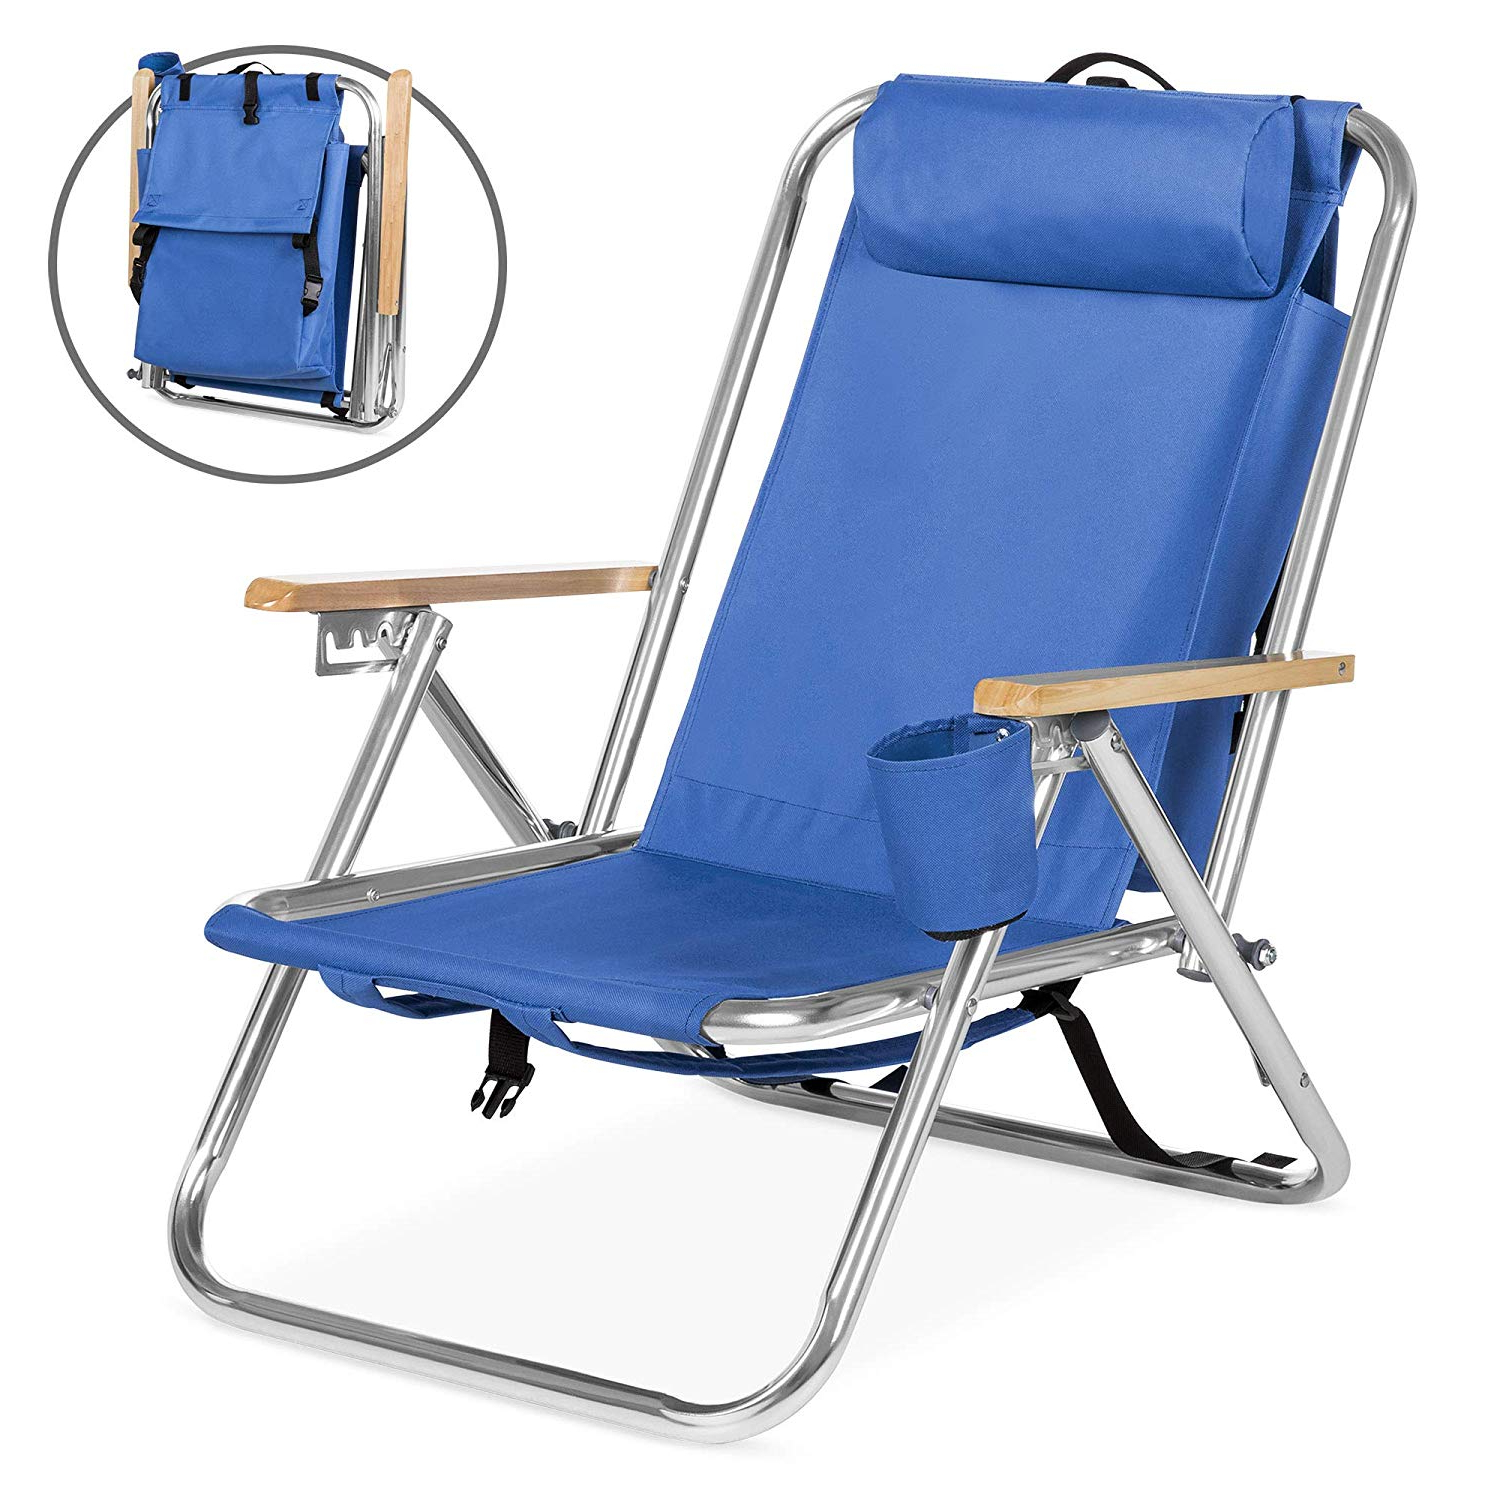 Recent Foldable Camping And Lounge Chairs For Beach Chair, Folding Portable Beach Chair, Adjustable Lounge Chair Recliners For Camping, Lawn, Patio, Pool – Blue, I5435 (Gallery 1 of 25)